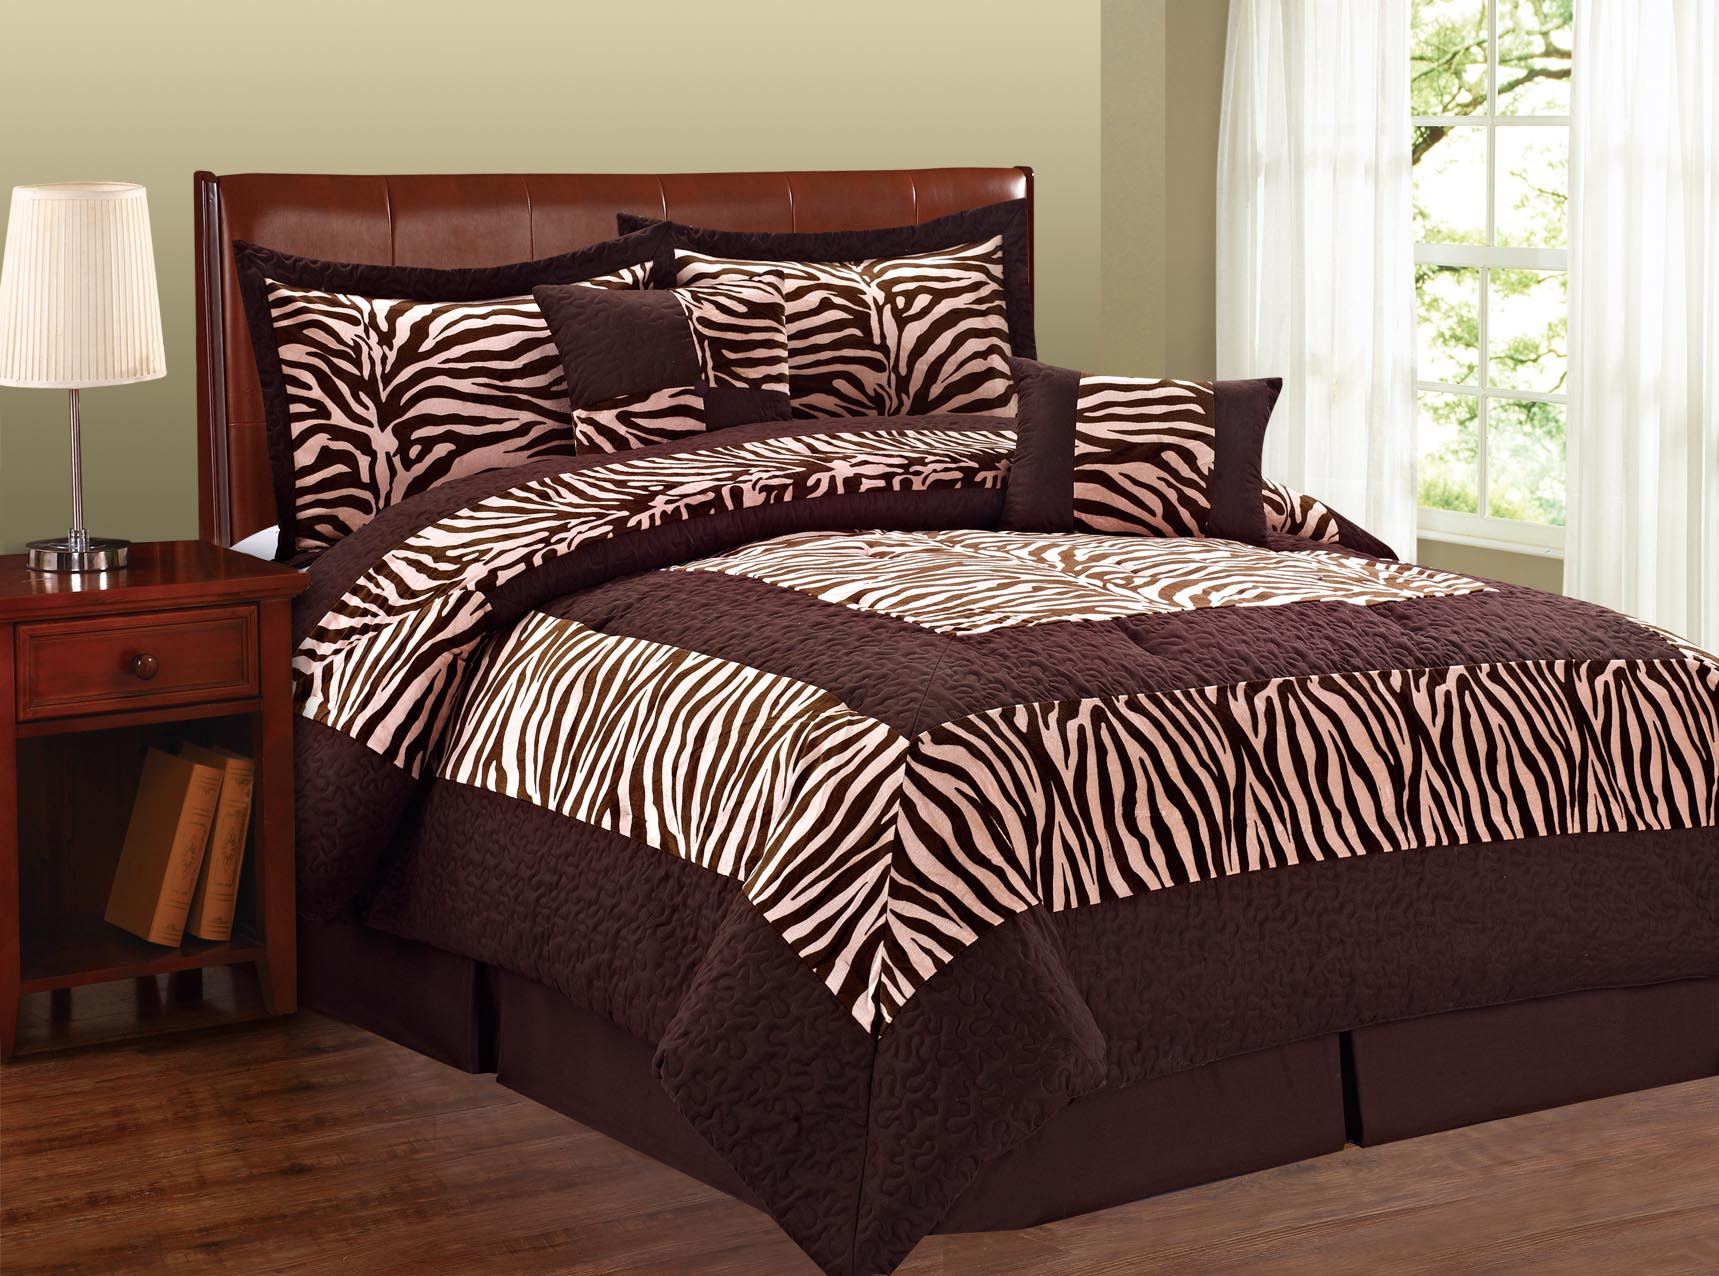 Brown zebra bedding set brown zebra orange bedding all Zebra print bedding